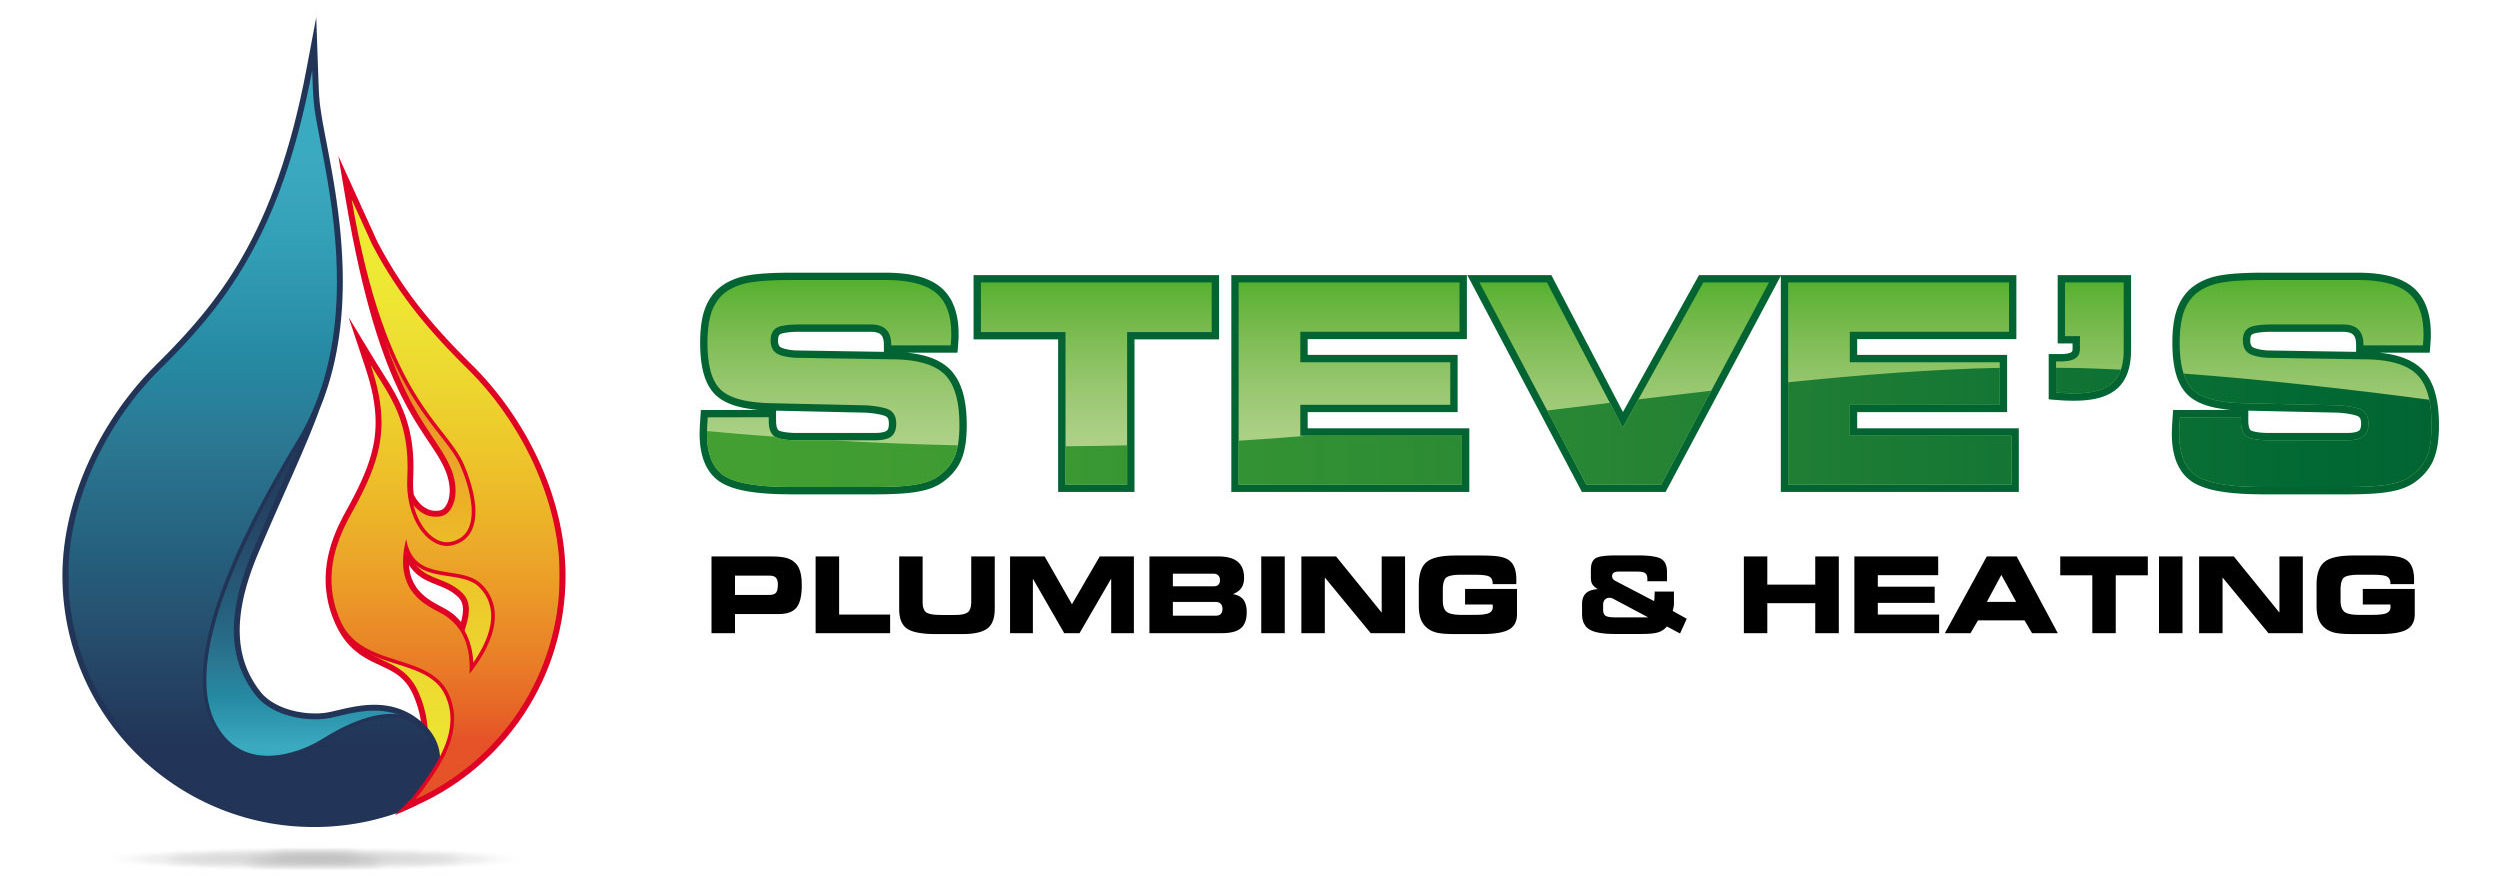 Steve's Plumbing and Heating